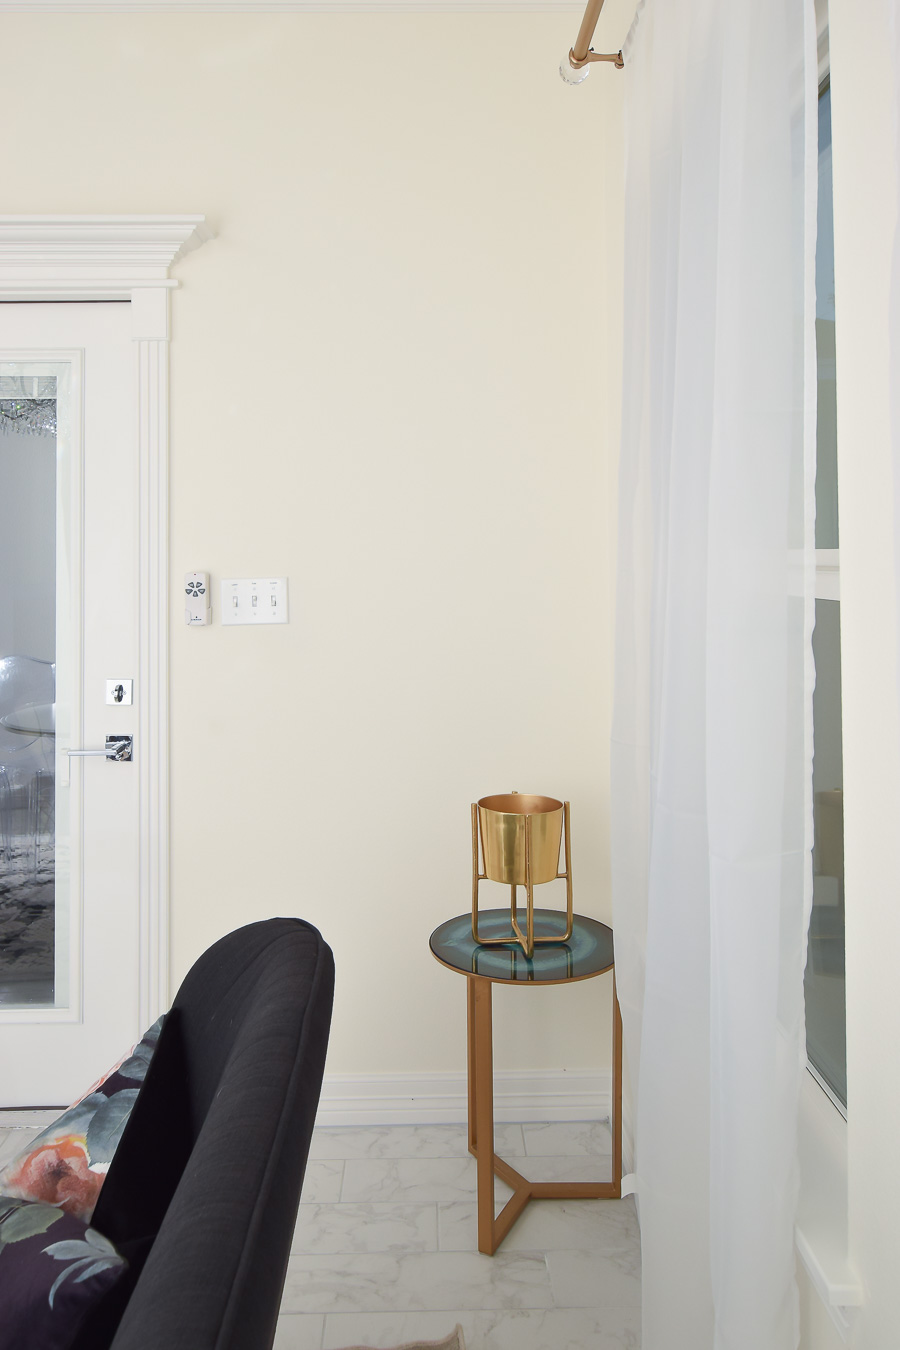 Patio door and bare wall in a small dining room space.